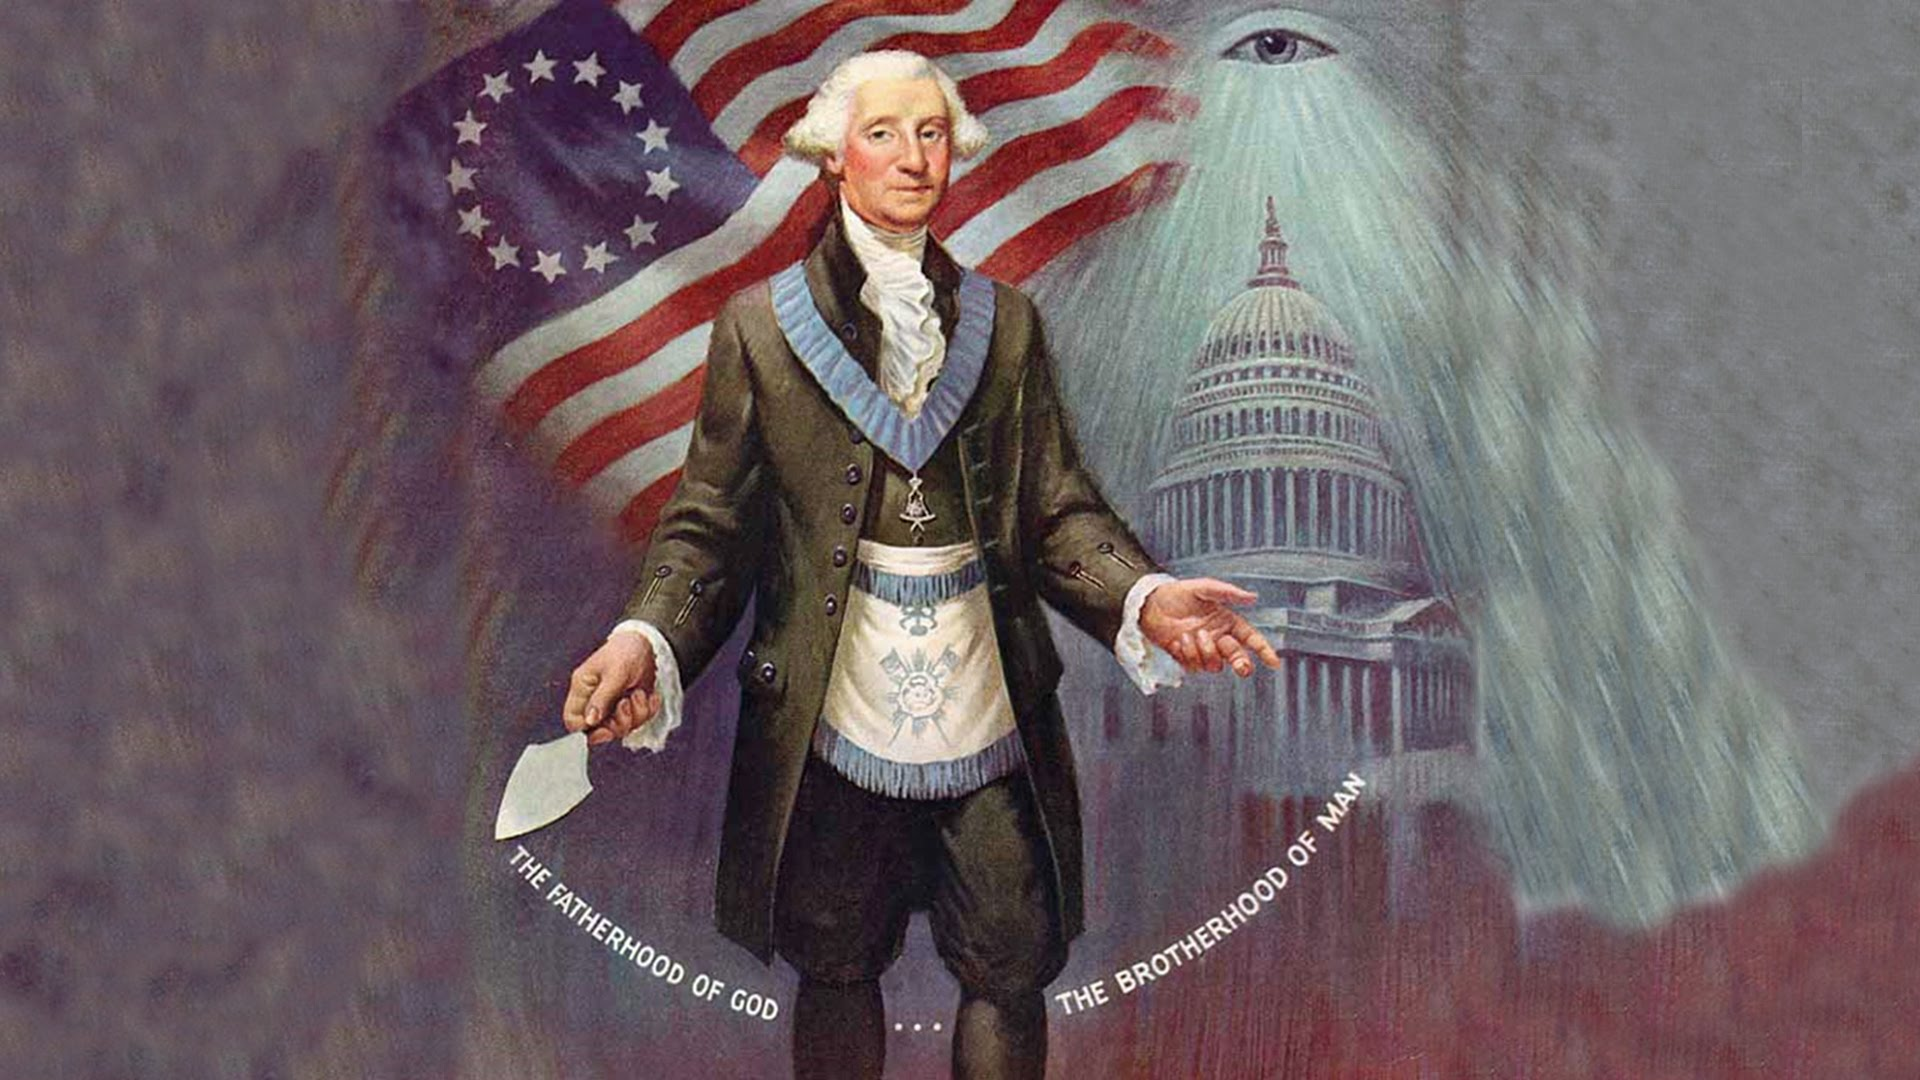 george washington war hero or war During the revolutionary war, general george washington often turned to a group of citizen-soldiers from maryland but their actions haven't really been documented until now a new book traces the.